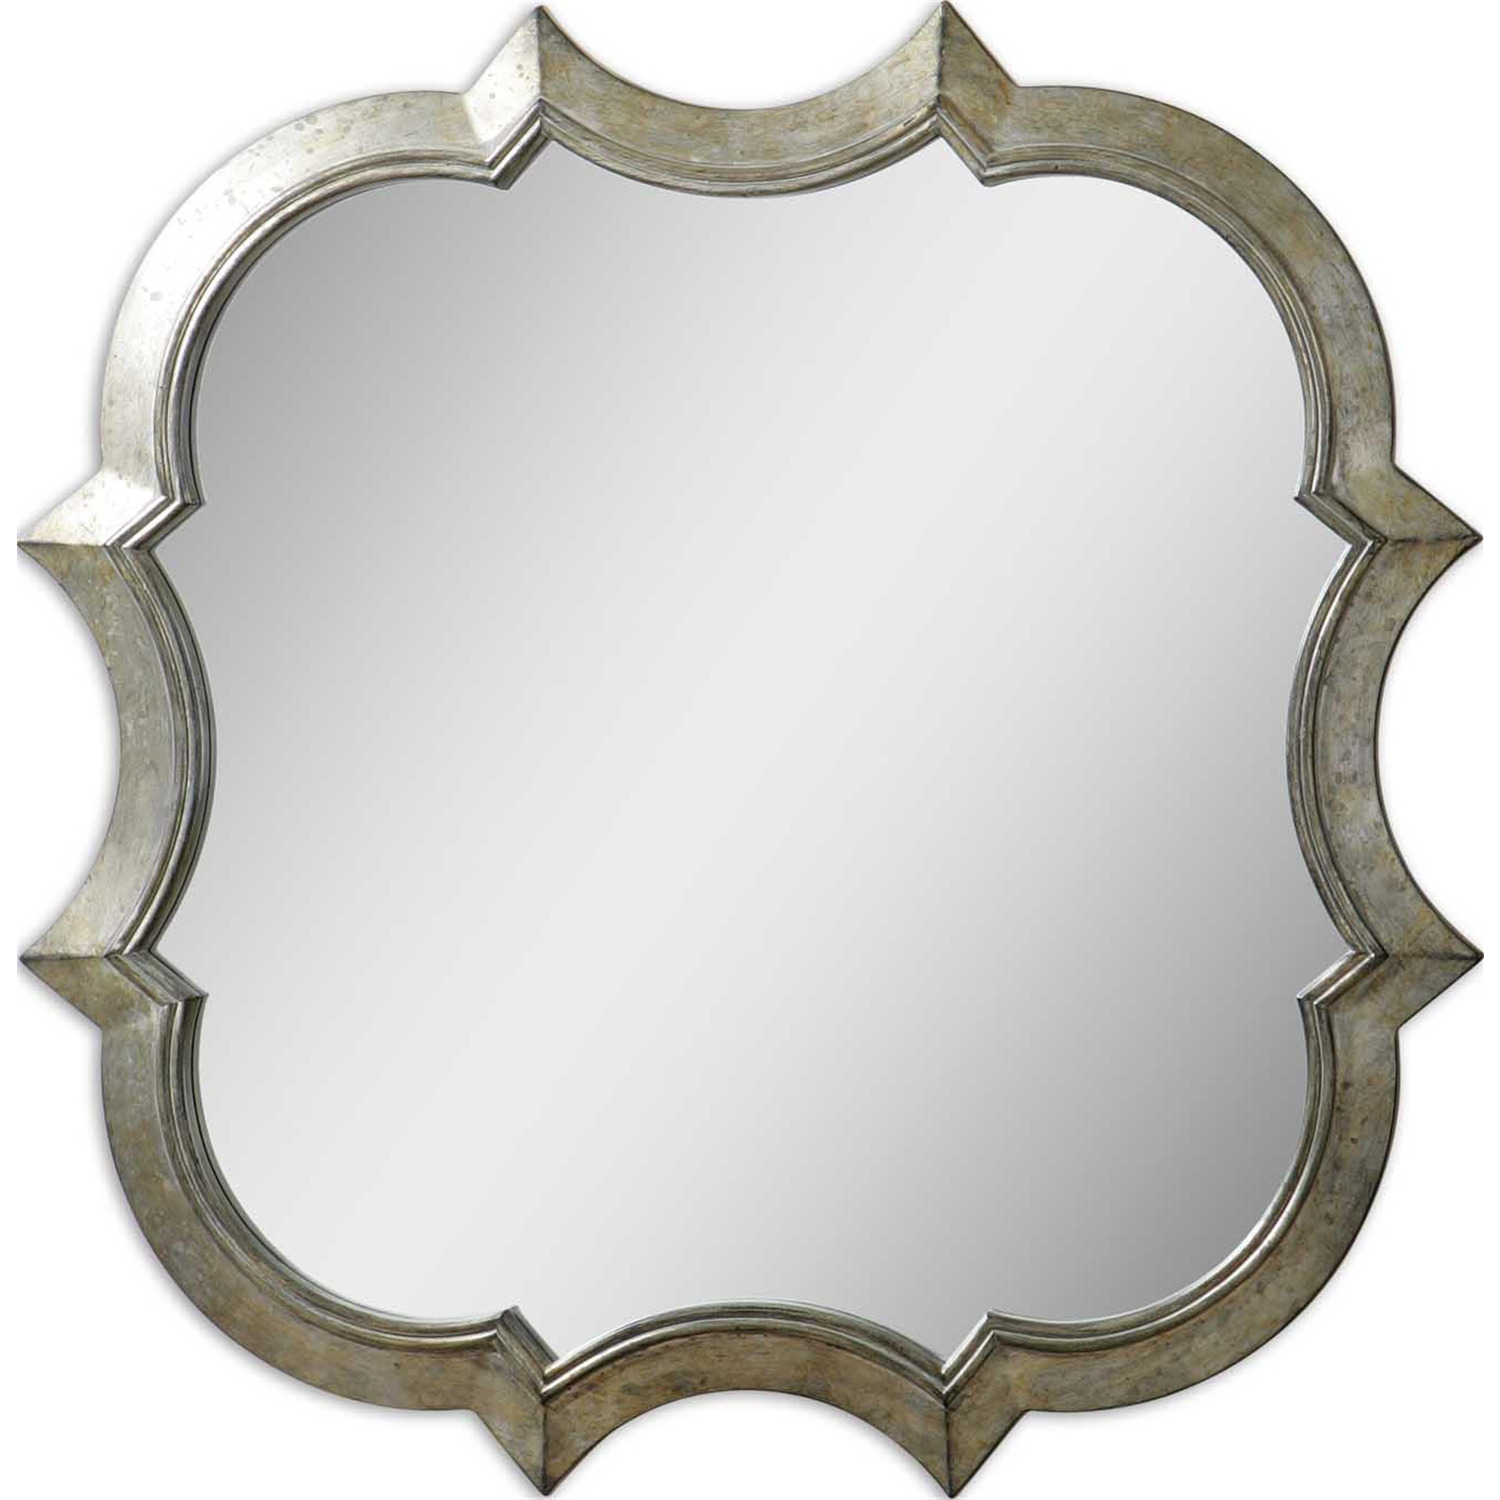 uttermost uttermost farista antique silver mirror by oj